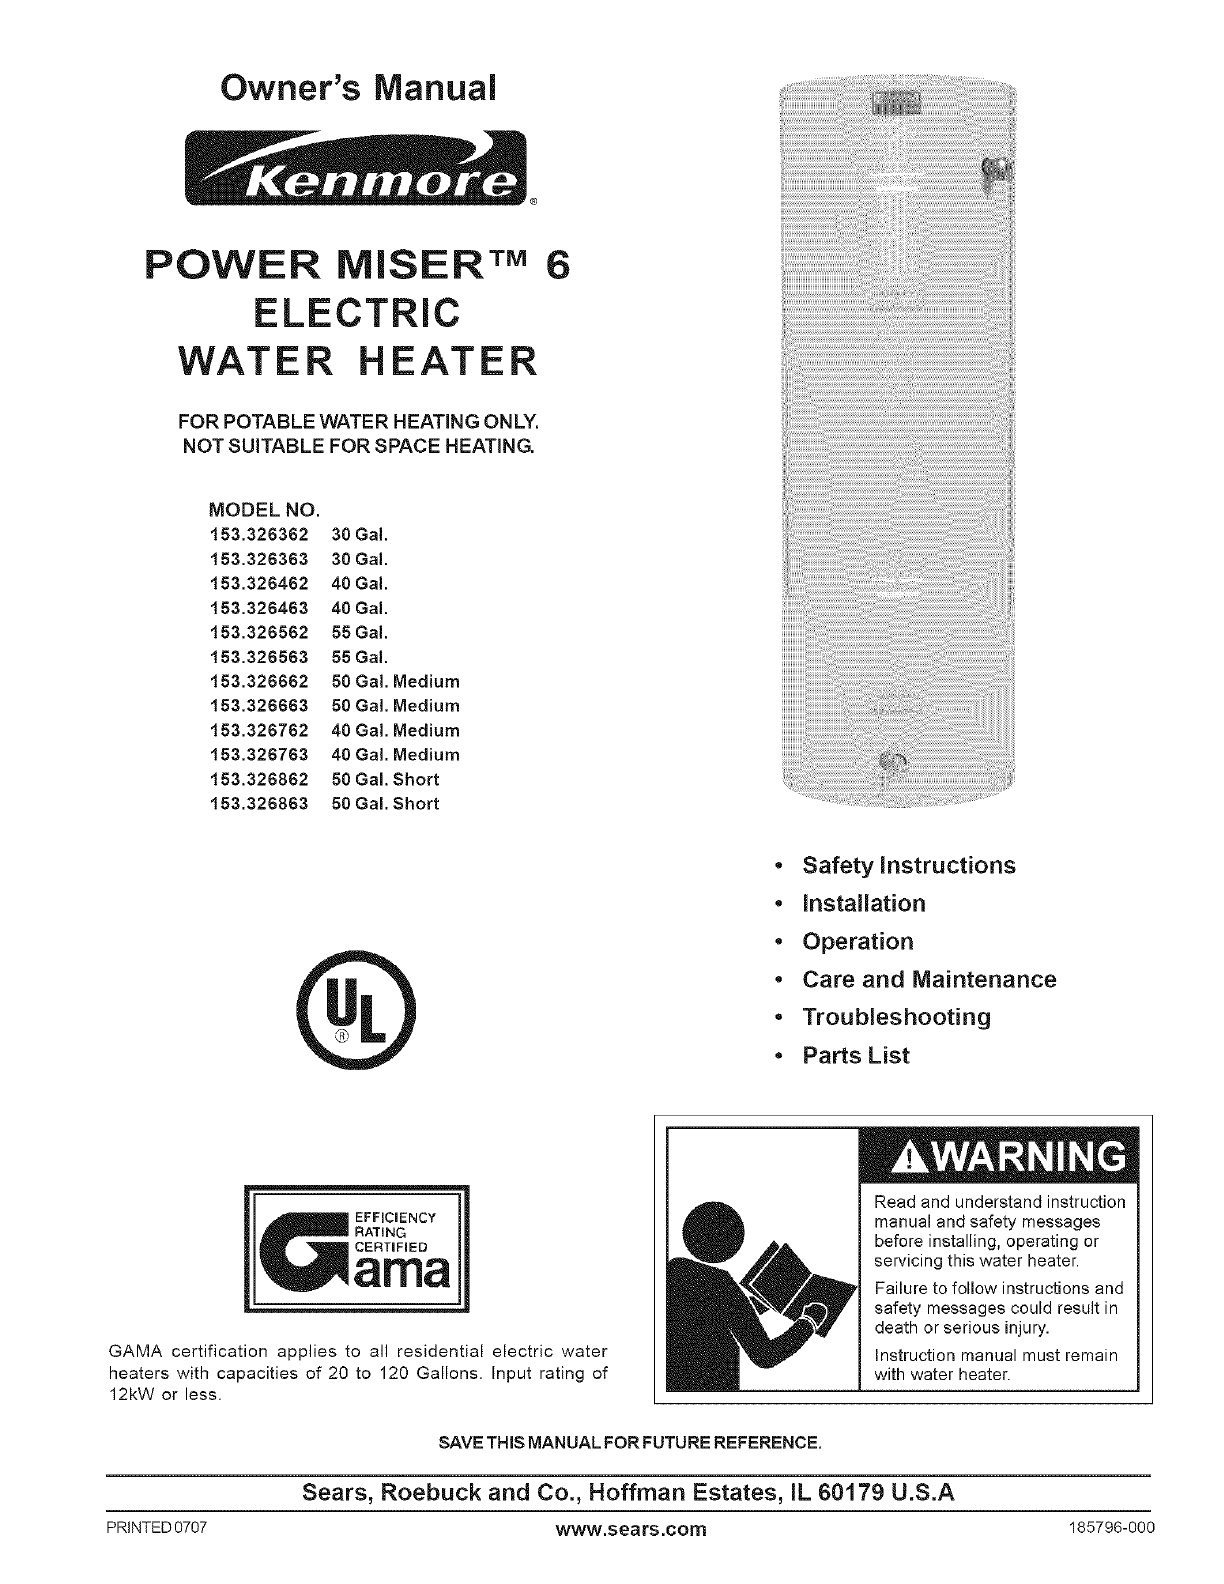 Kenmore water heater 153326562 55 gal user guide manualsonline ccuart Image collections